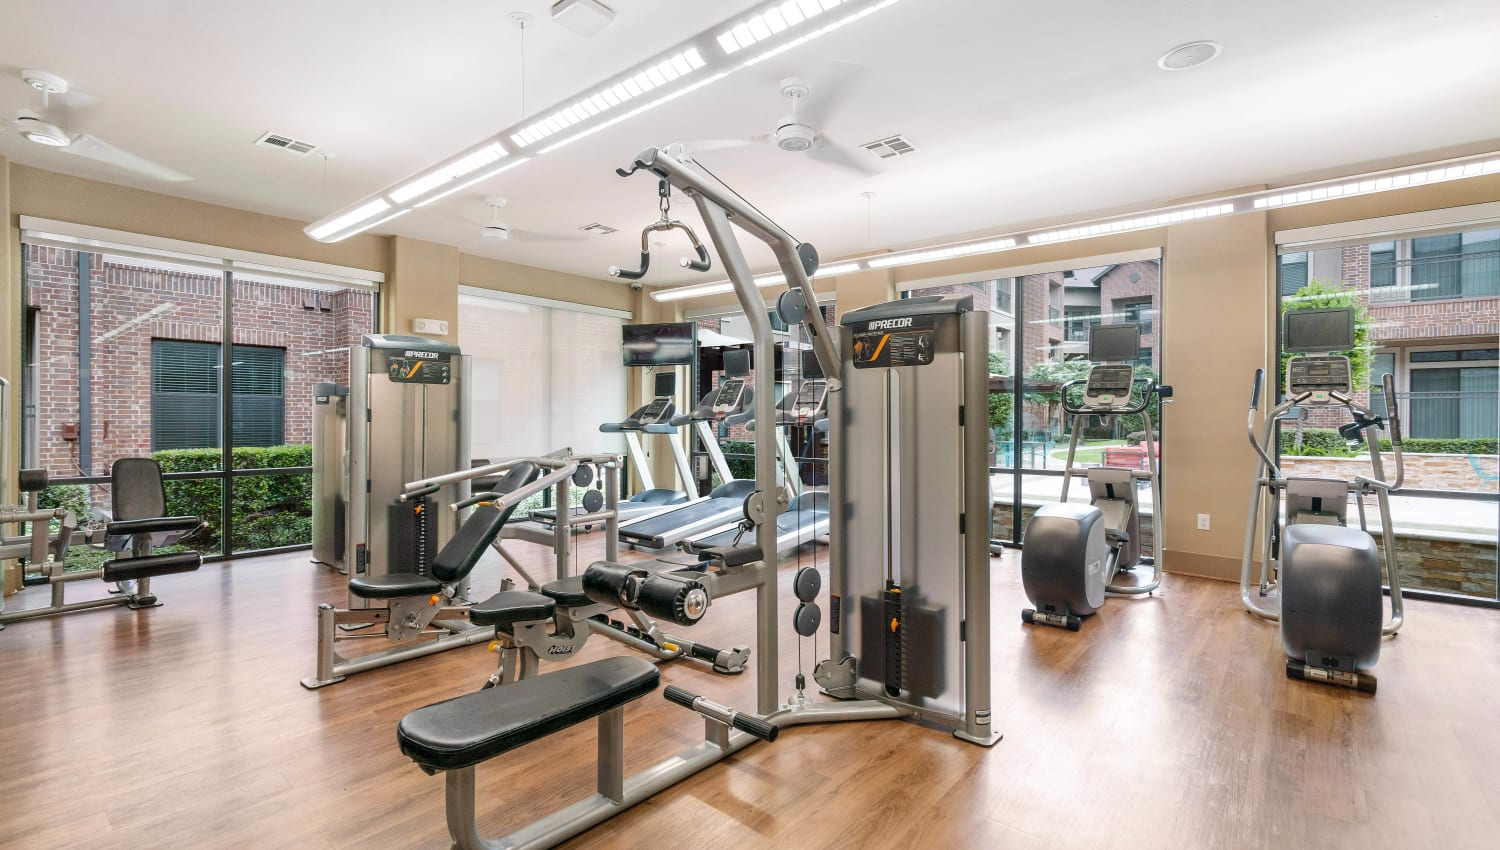 Ample exercise equipment in the fitness center at Olympus Sierra Pines in The Woodlands, Texas